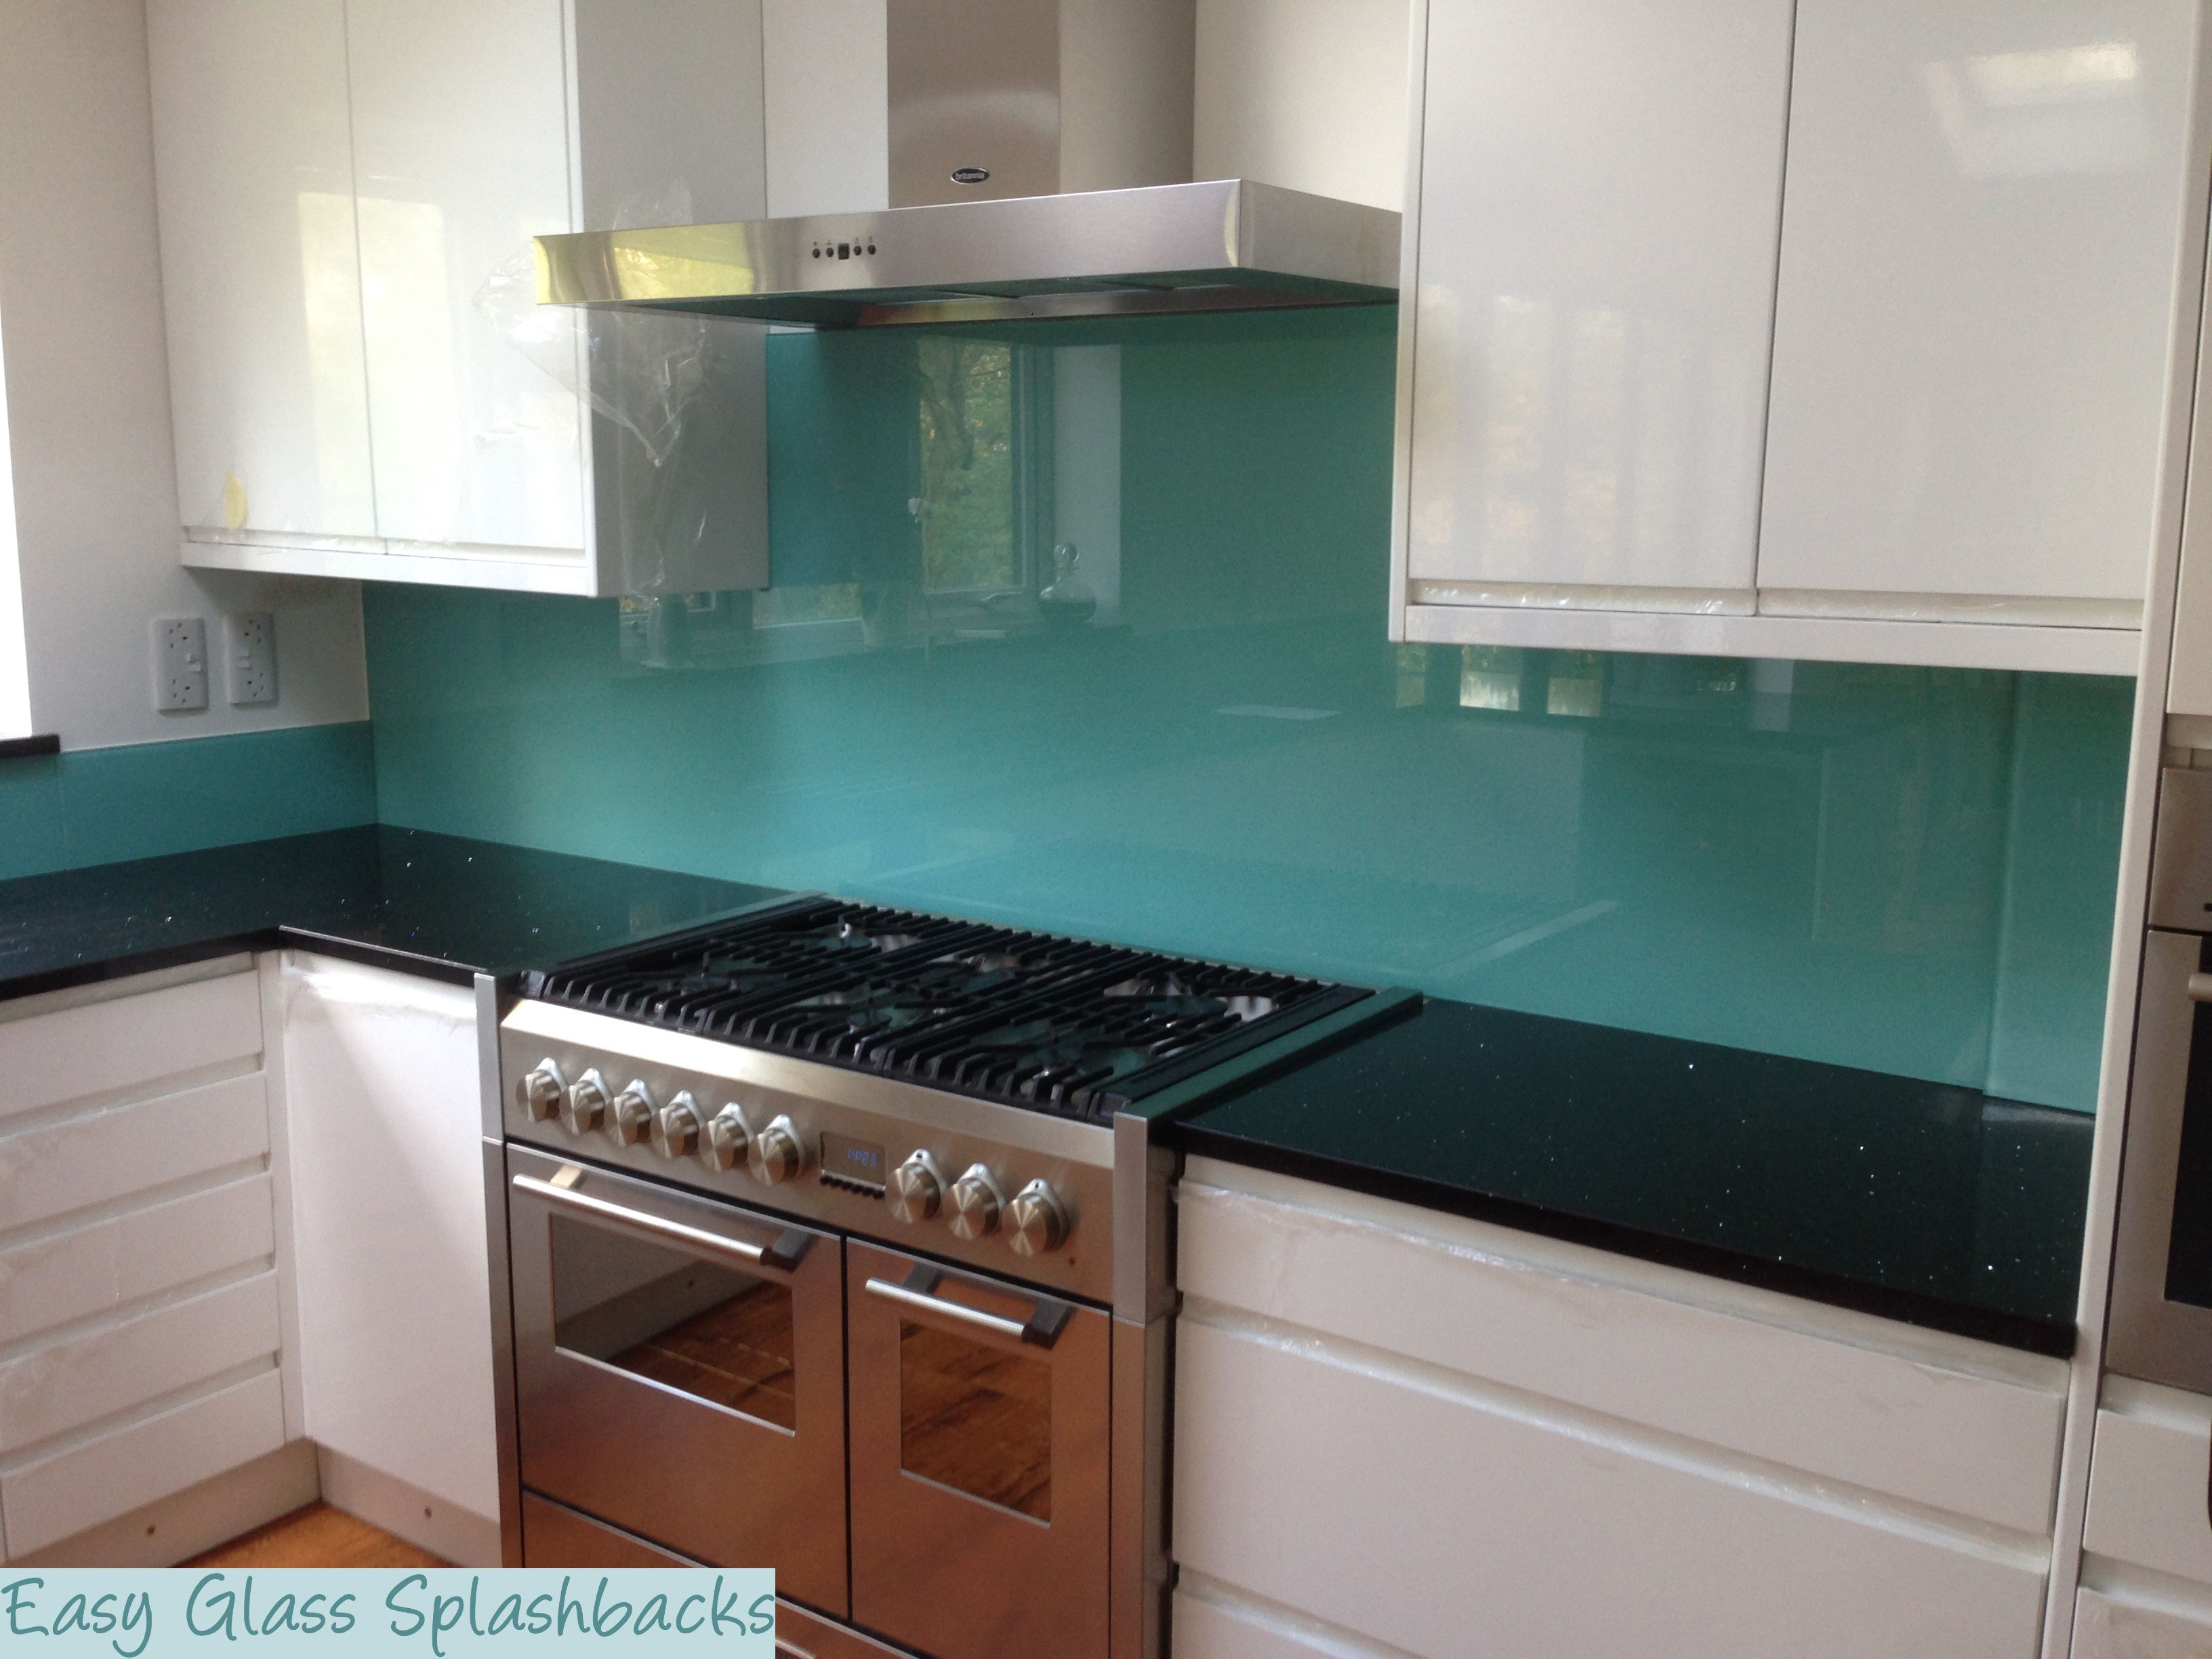 Kitchen Tiles And Splashbacks renovating recycled ceramic tile tags : granite effect worktops in